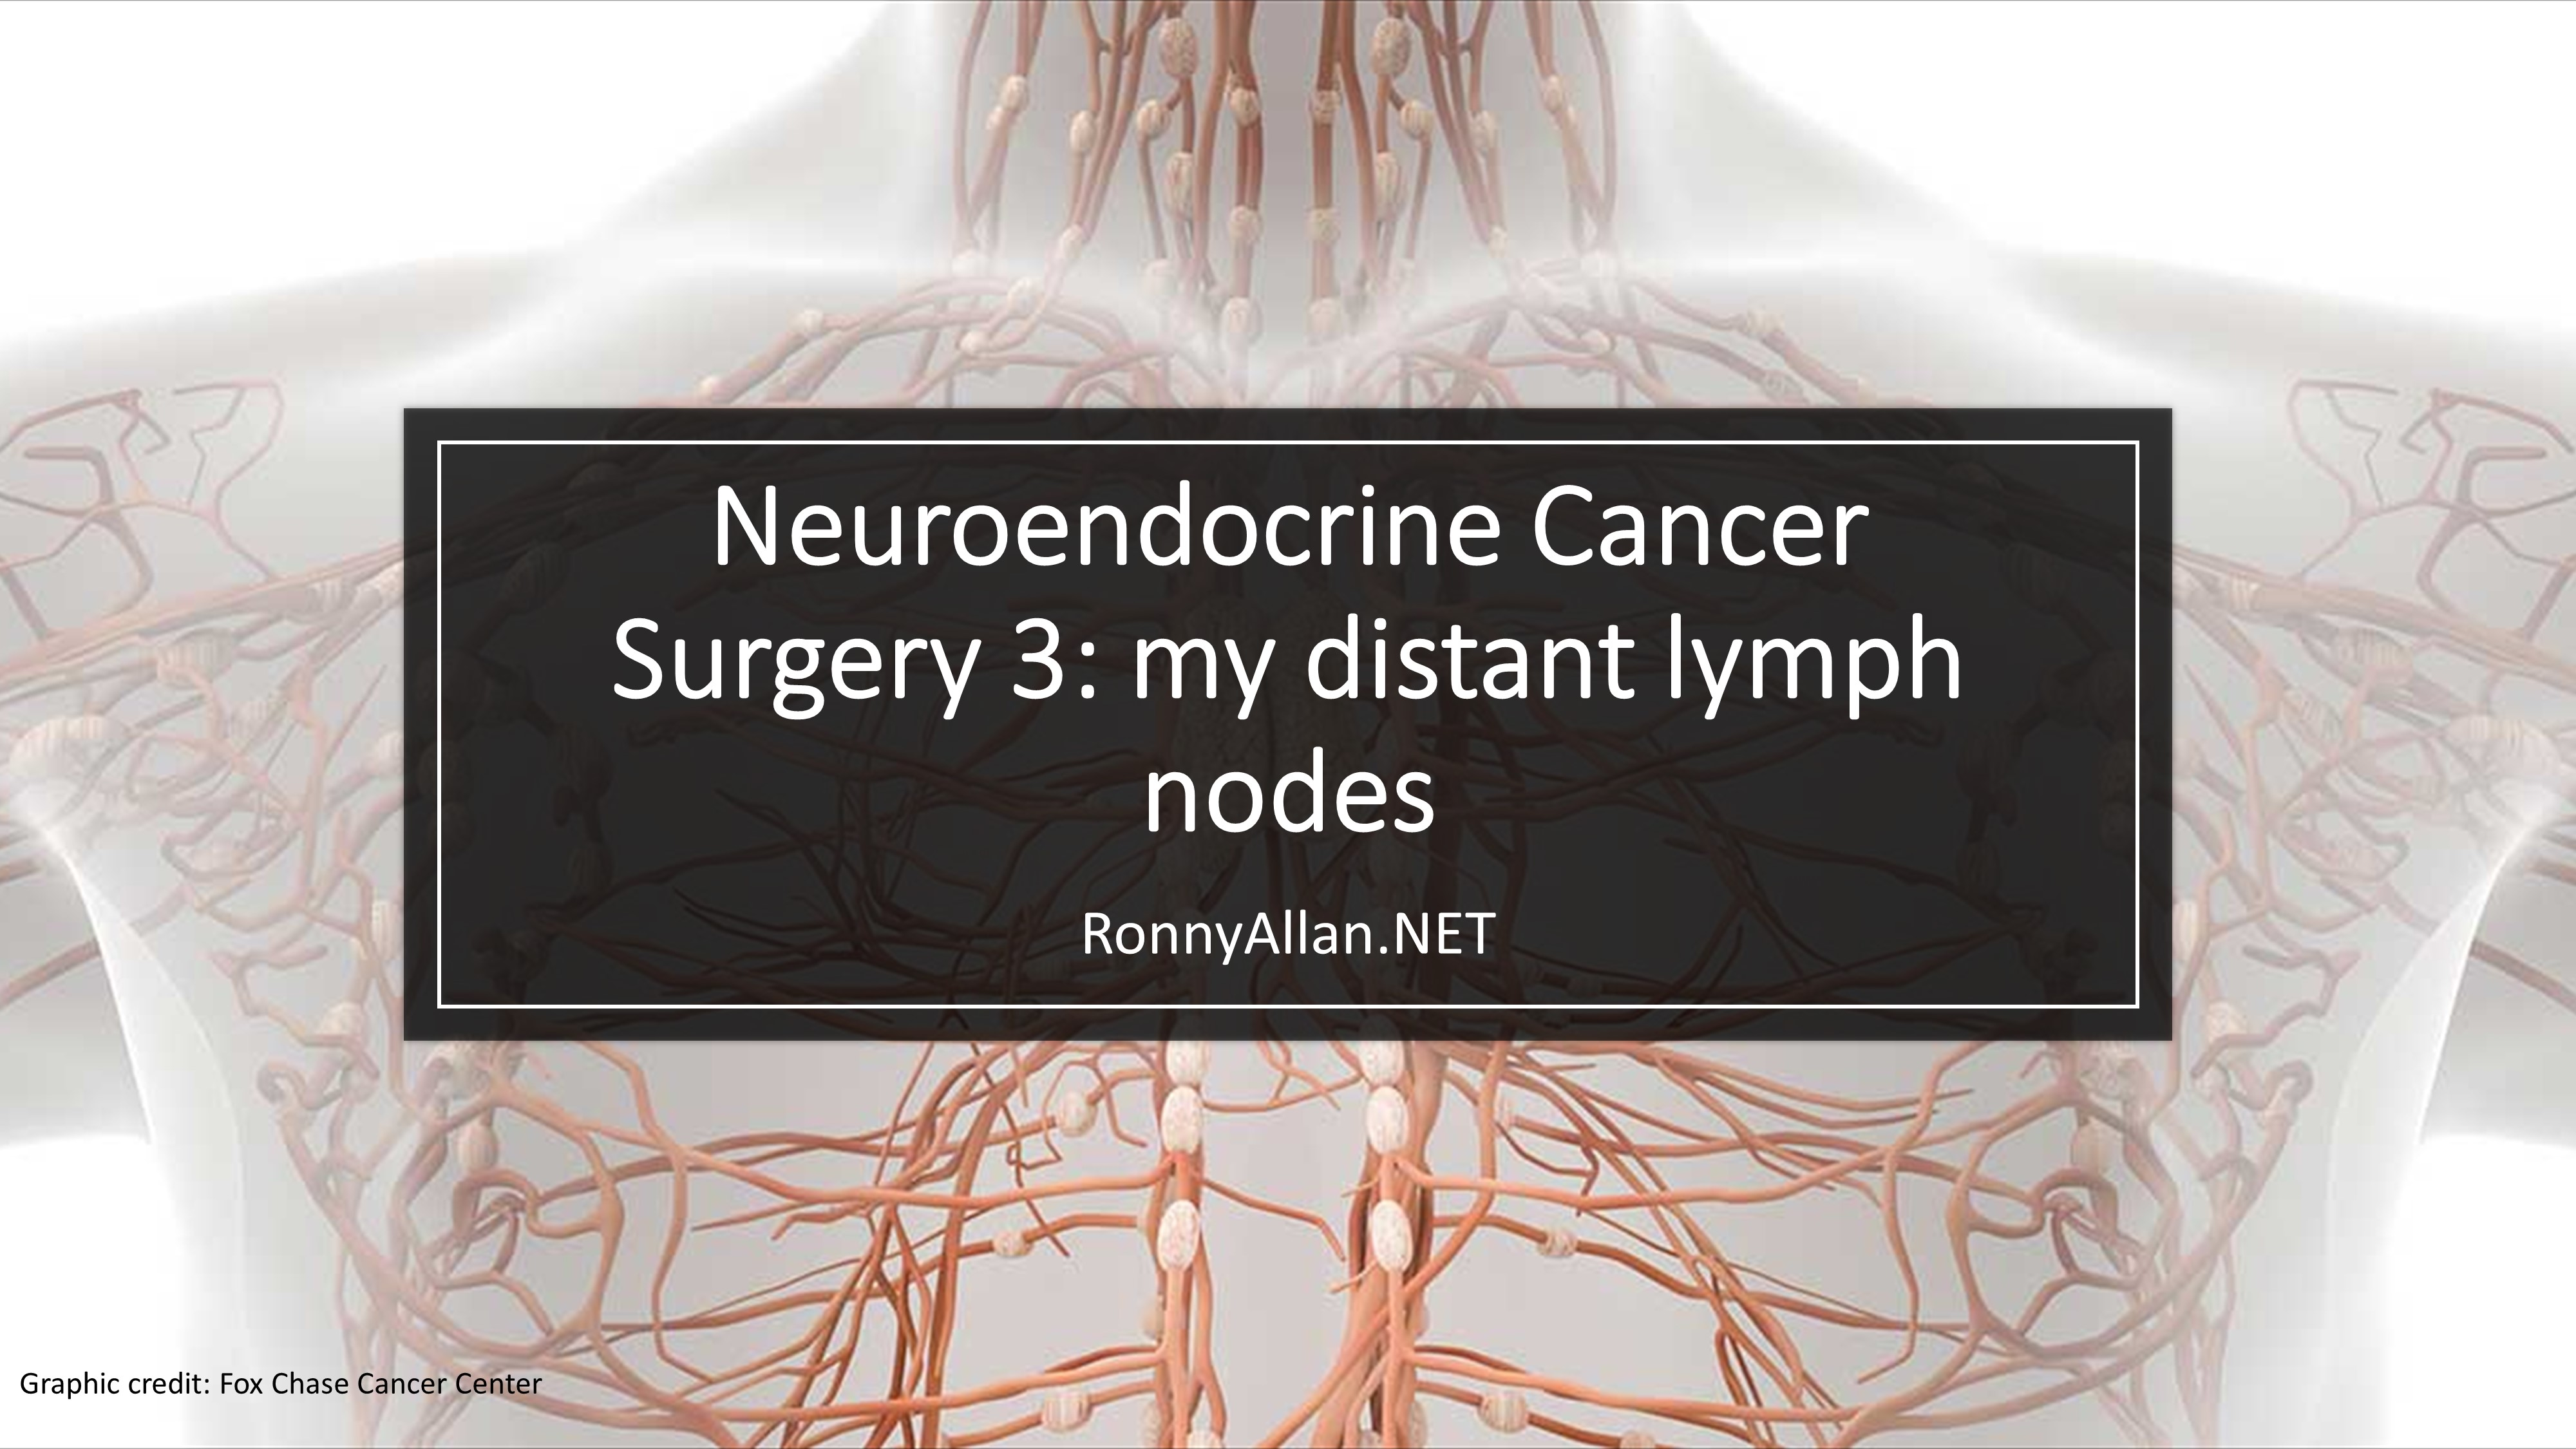 Neuroendocrine Cancer Surgery 3: my distant lymph nodes